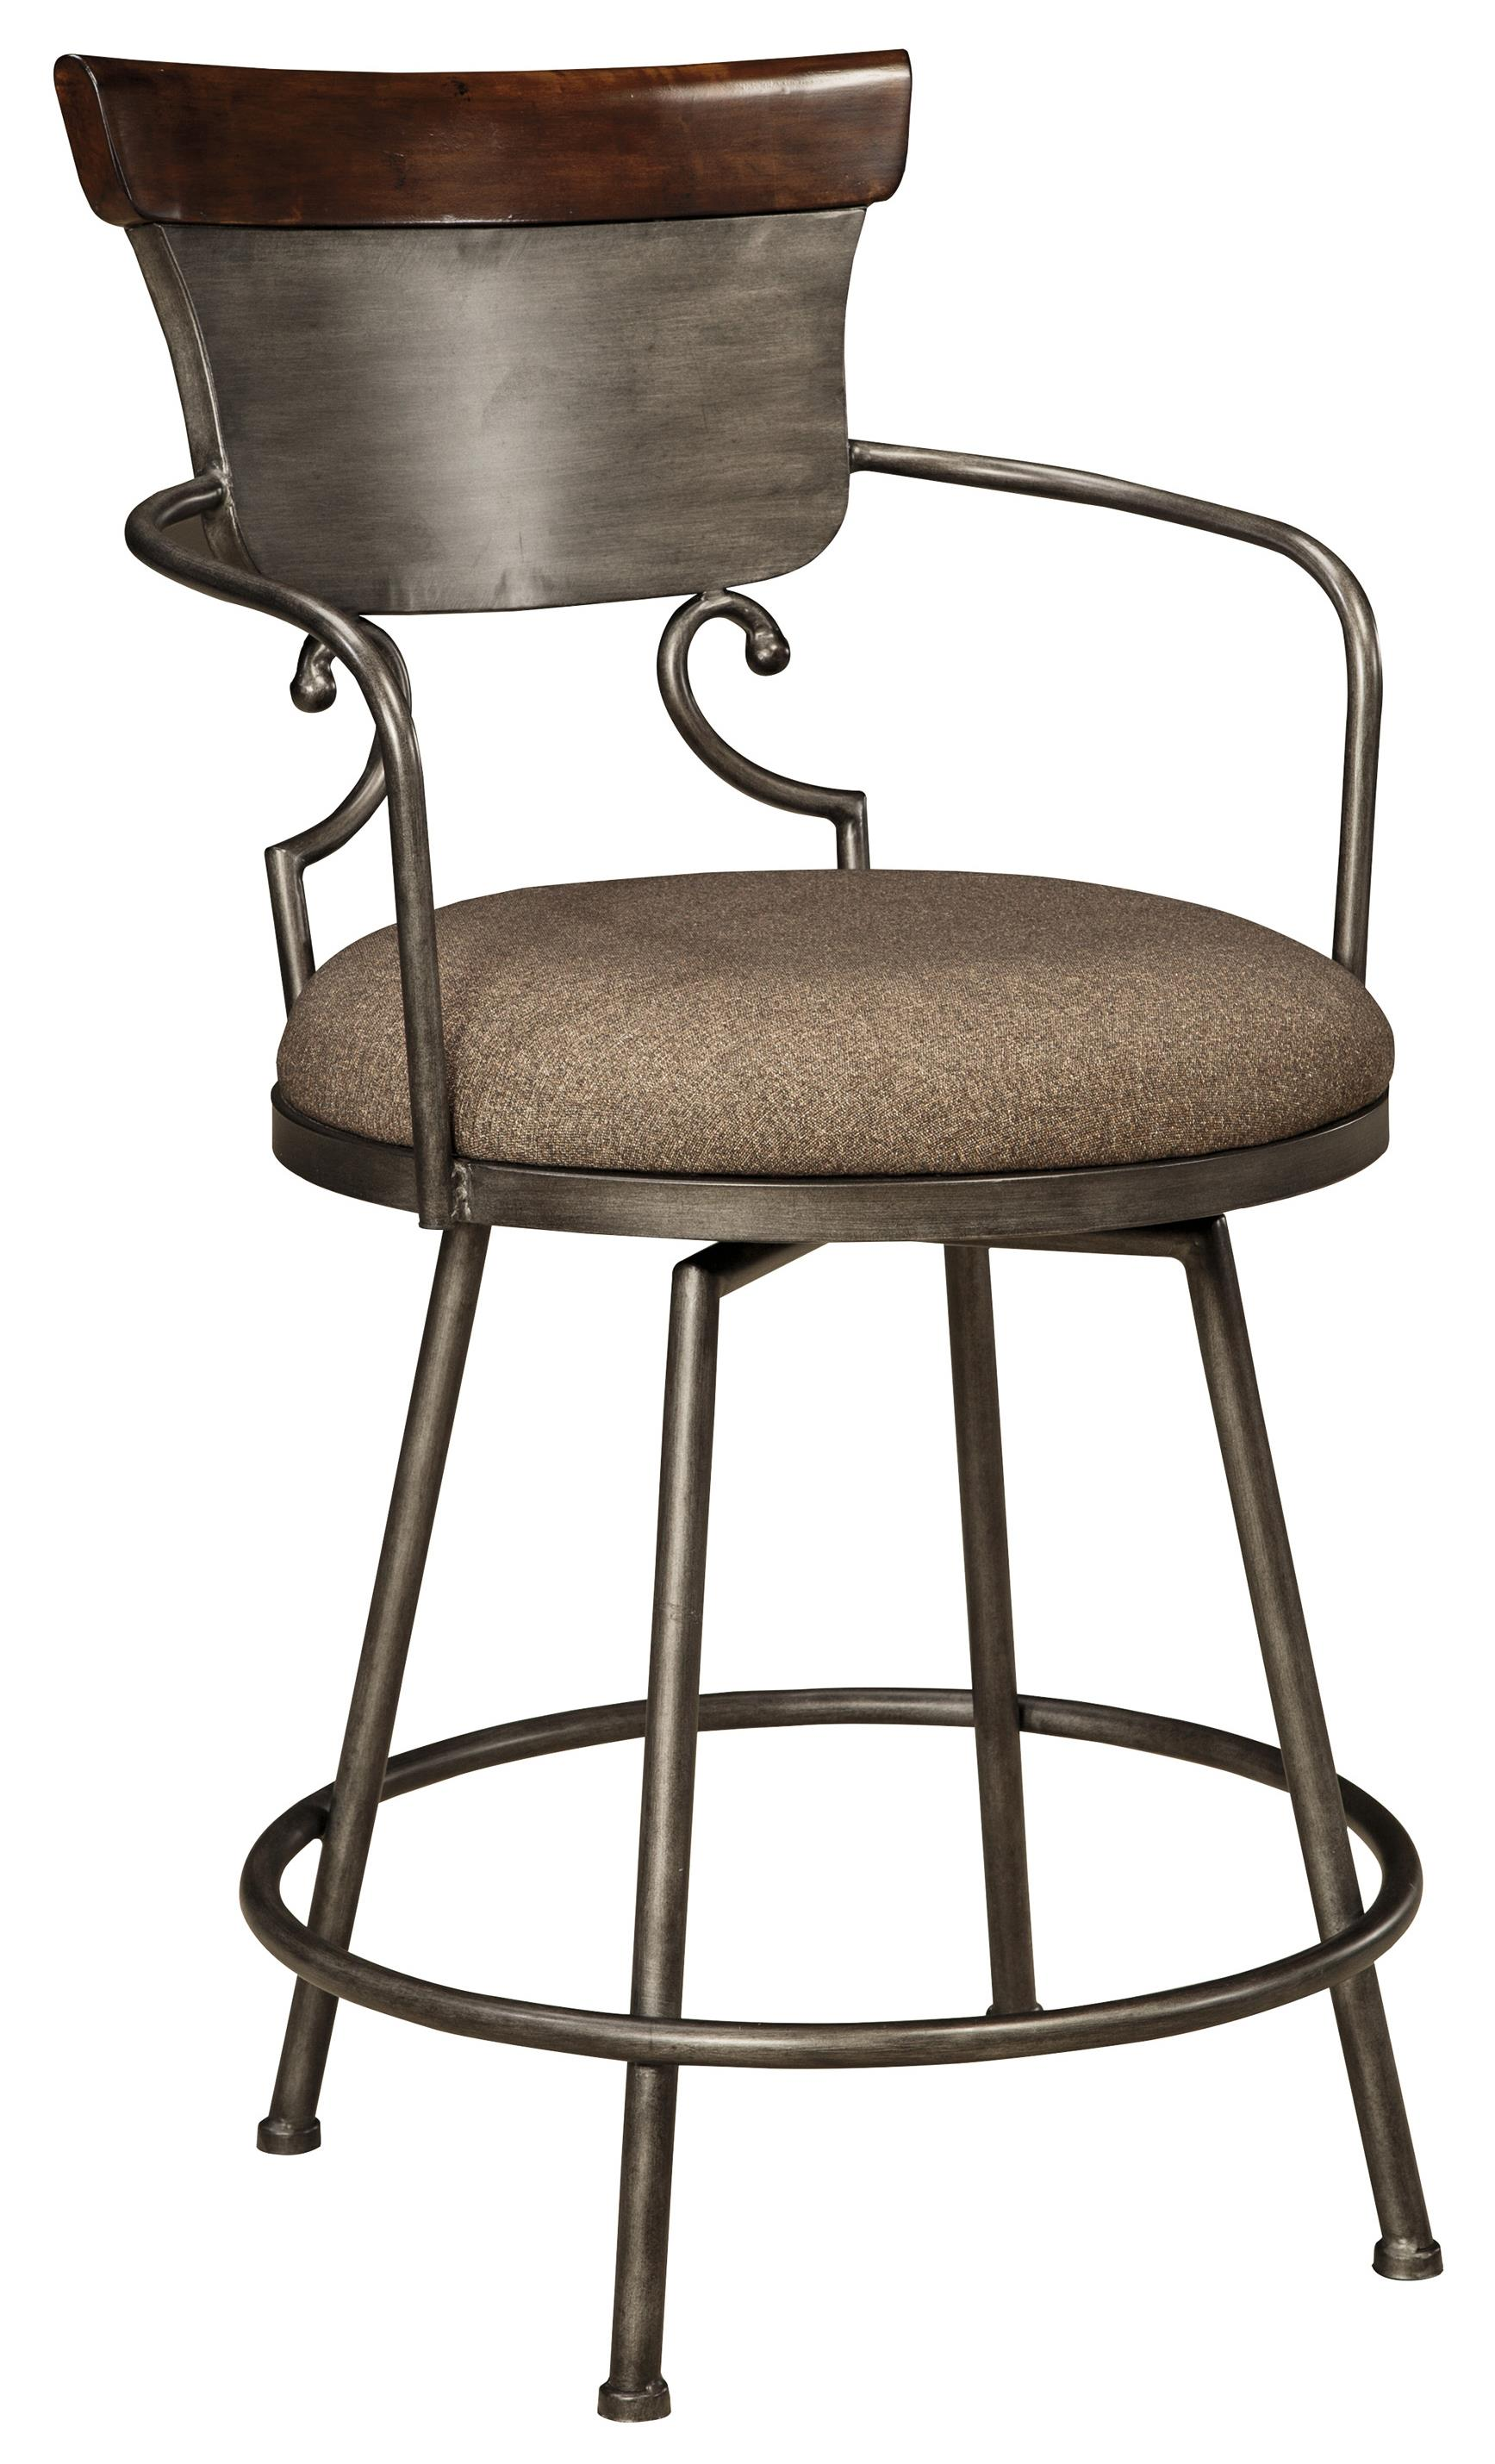 Upholstered Barstool With Metal Frame Amp Swivel Seat By